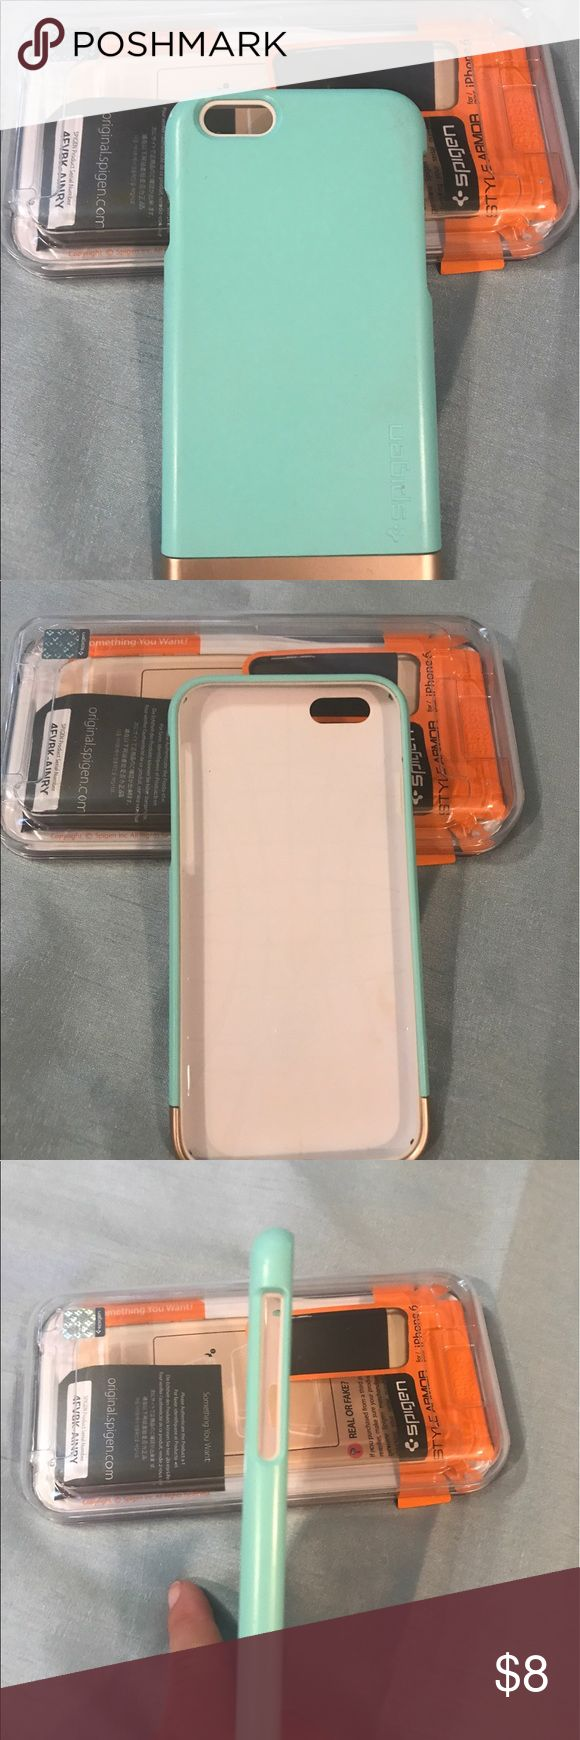 🌸Spigen IPhone 6 case🌸 Spigen IPhone 6 cover. Style is Armor. Has a soft inner TPU layer to protect phone when sliding in or out of case. Has hard polycarbonate cover with bottom piece that slides out for inserting or removing phone. Color is Mint and Champaign Gold. Has some scratches on cover and on gold bottom. Still in good condition. Spigen Accessories Phone Cases